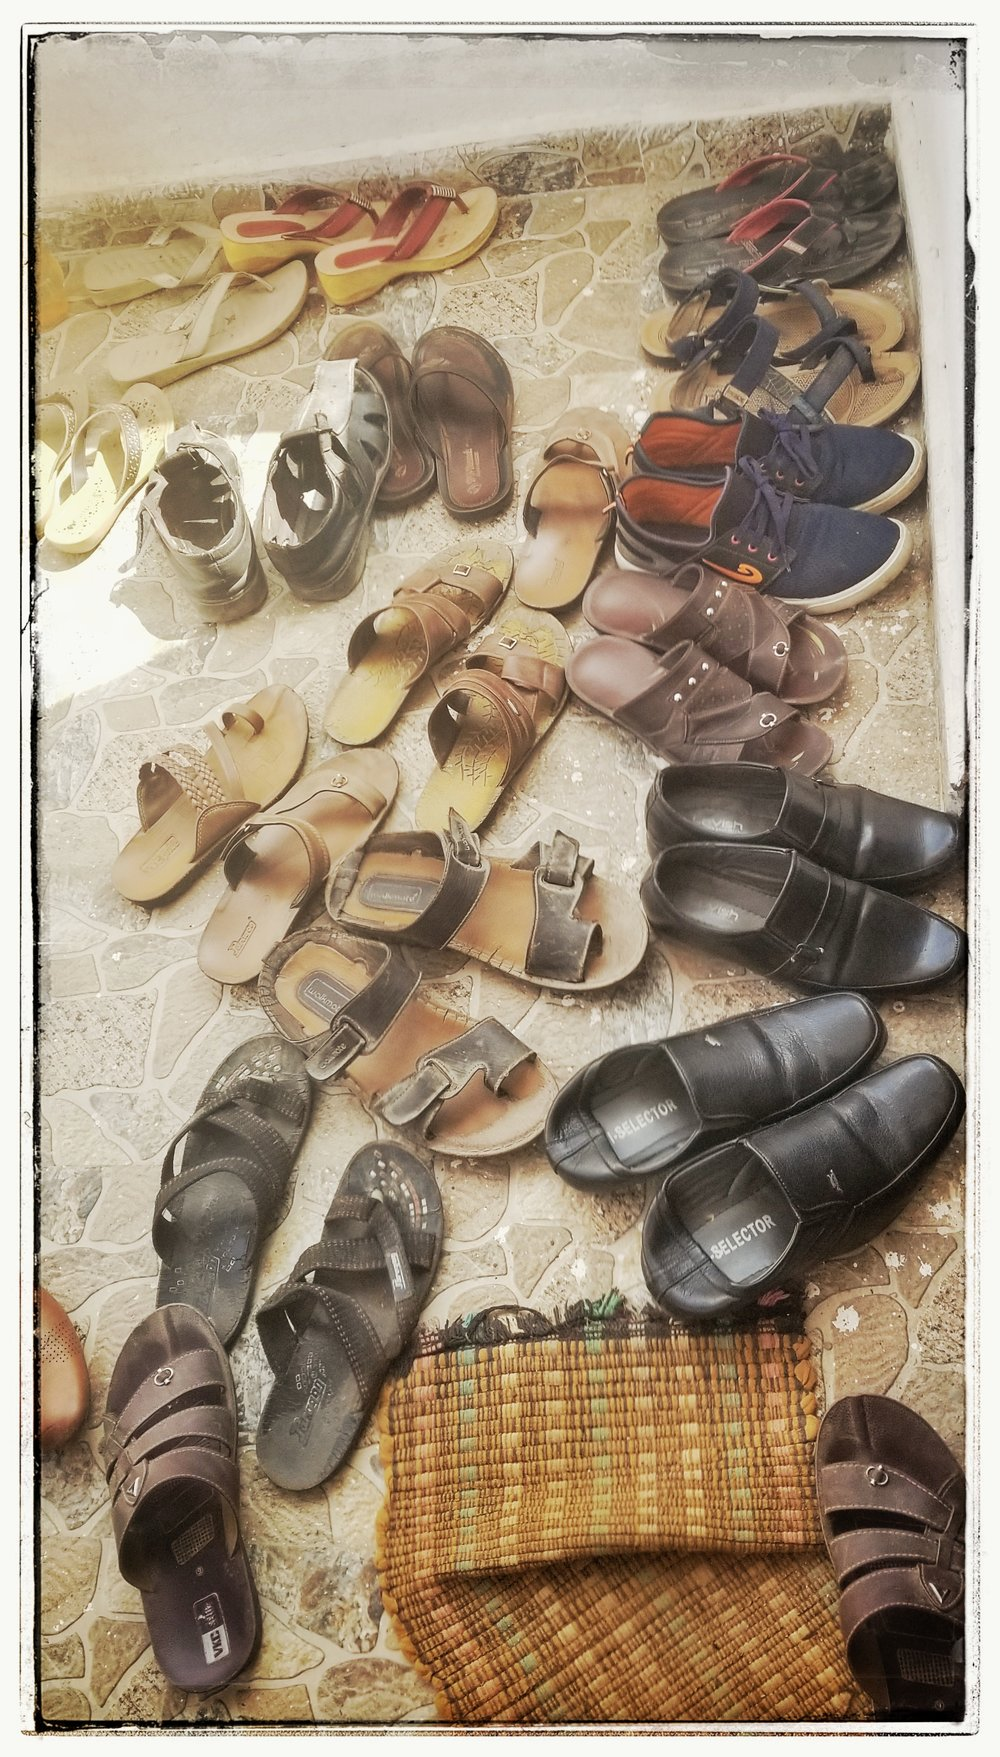 Shoes are always removed not just for churches or mosques/temples but in homes as well as a sign of respect.